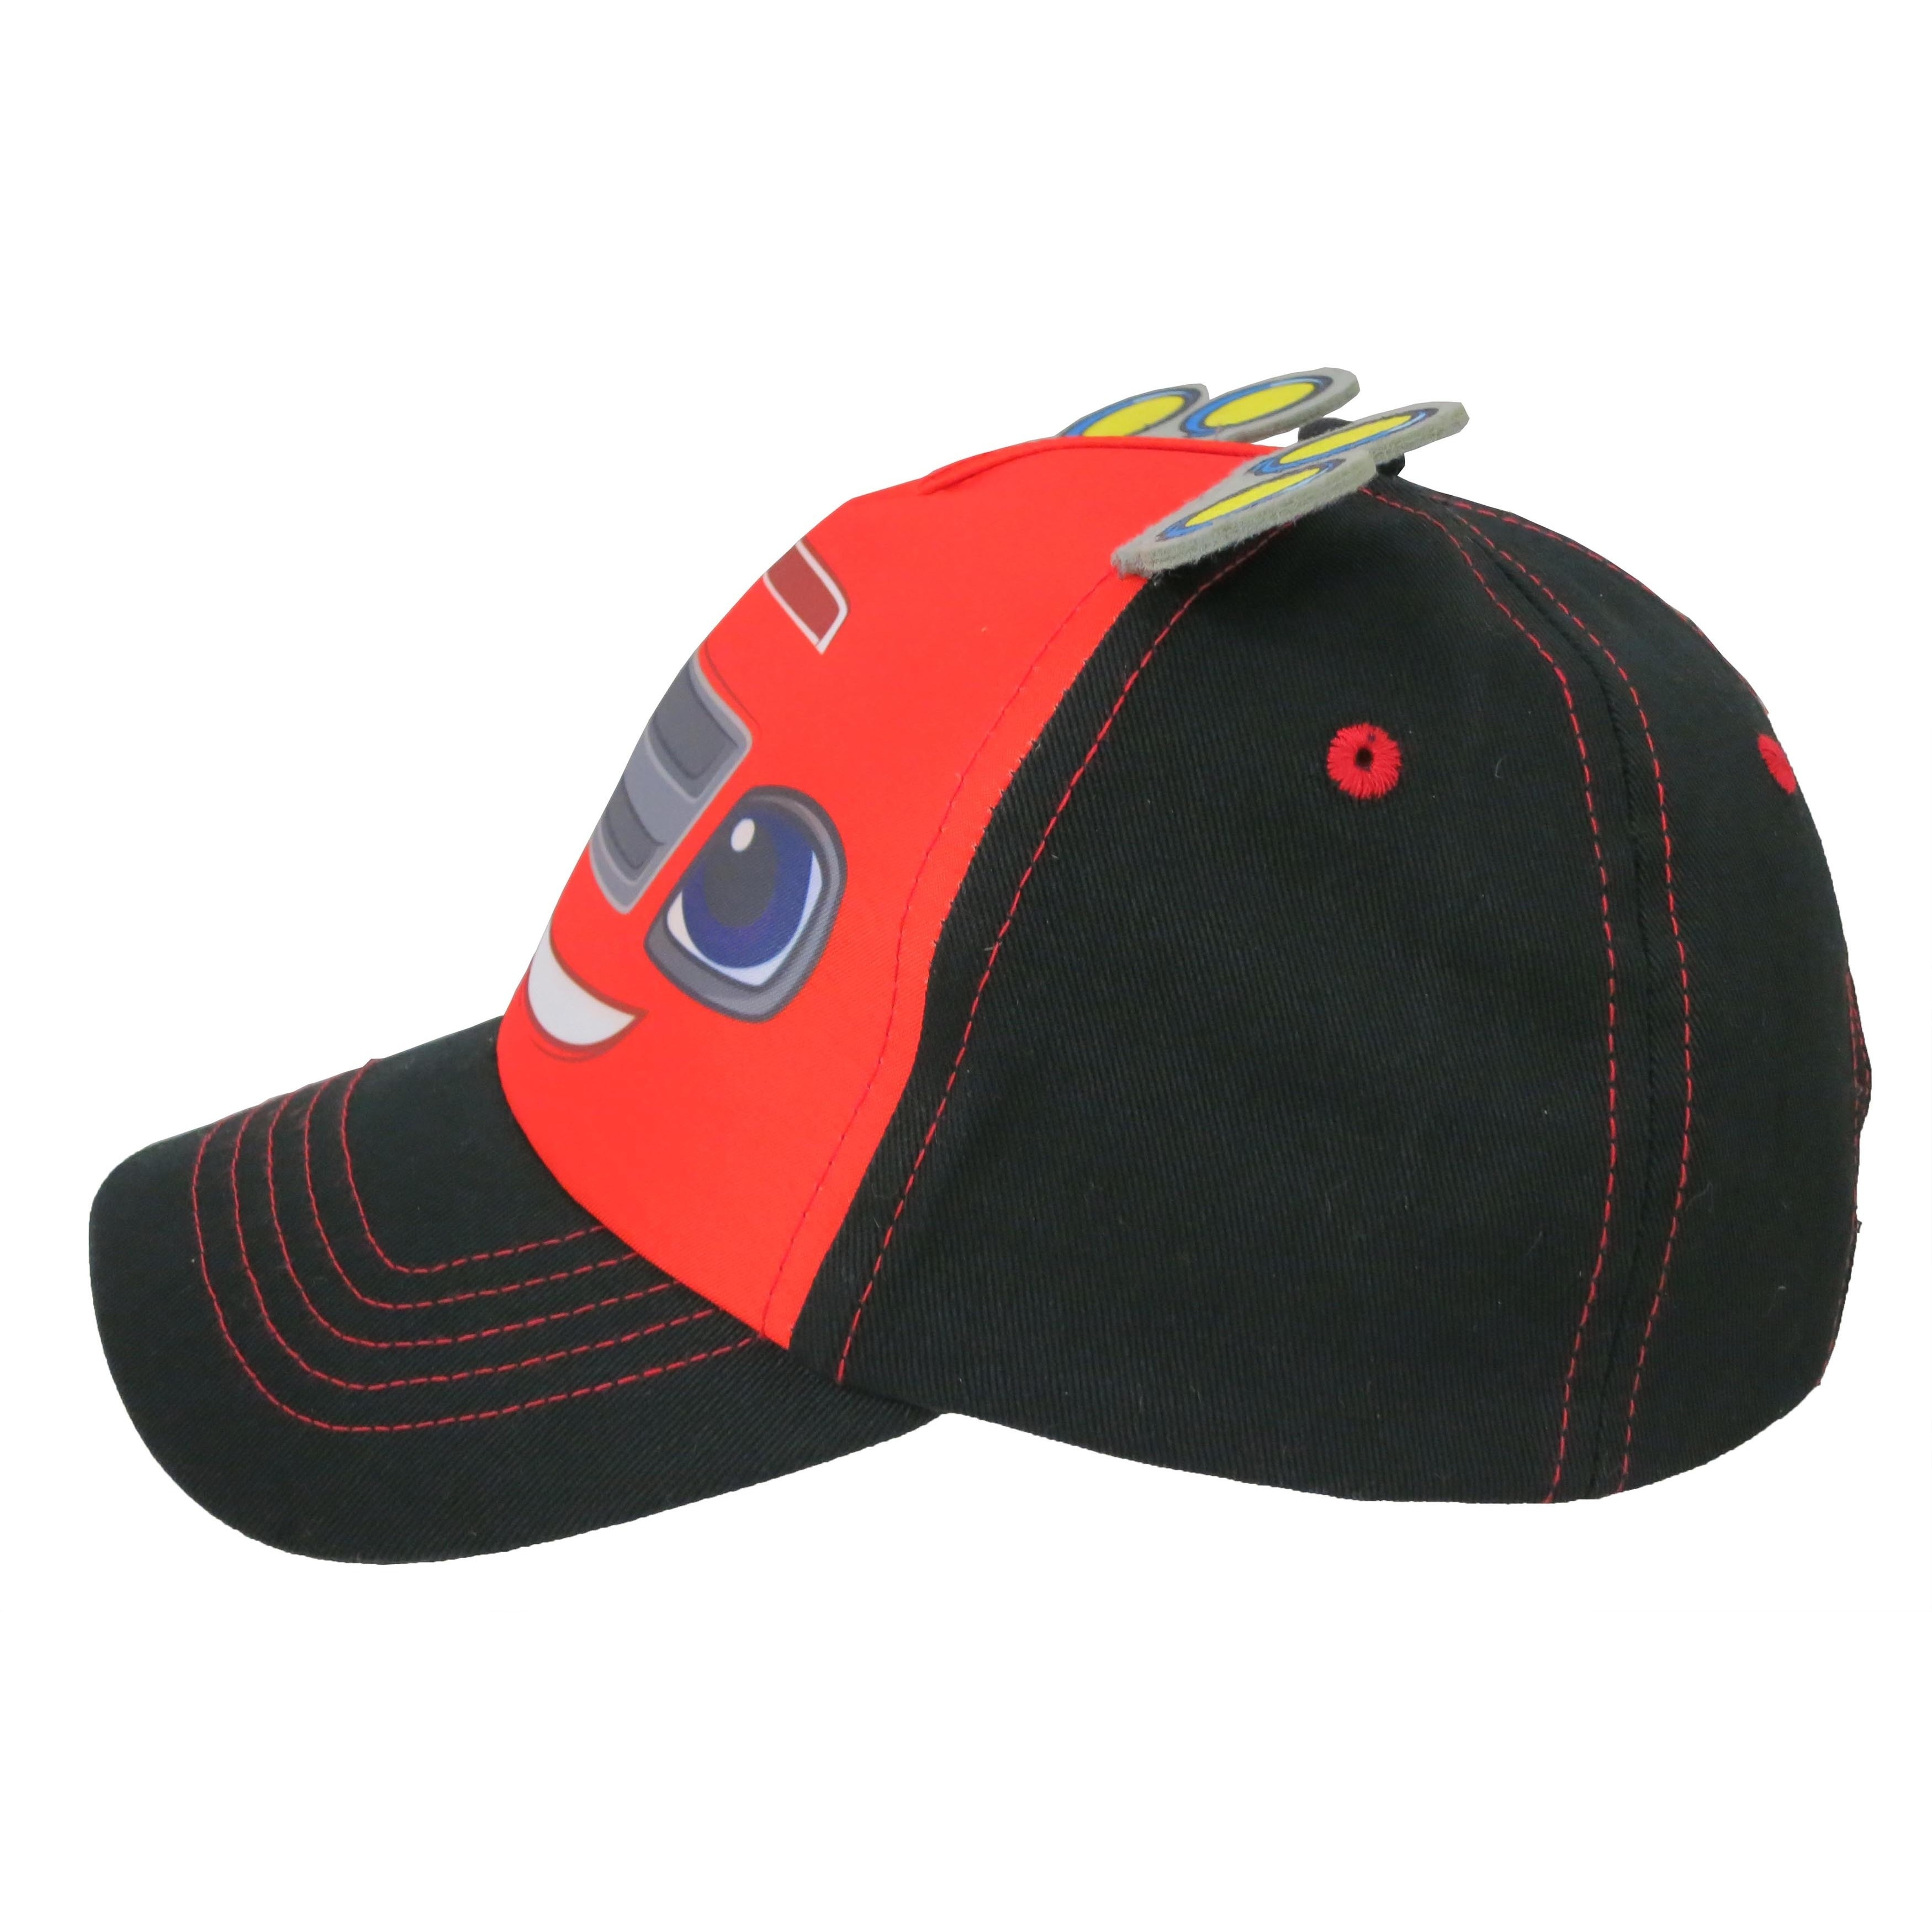 brand new 6152d 0f765 Shop Nickelodeon  Blaze and the Monster Machines  Cotton Baseball Cap -  Ships To Canada - Overstock - 13689611